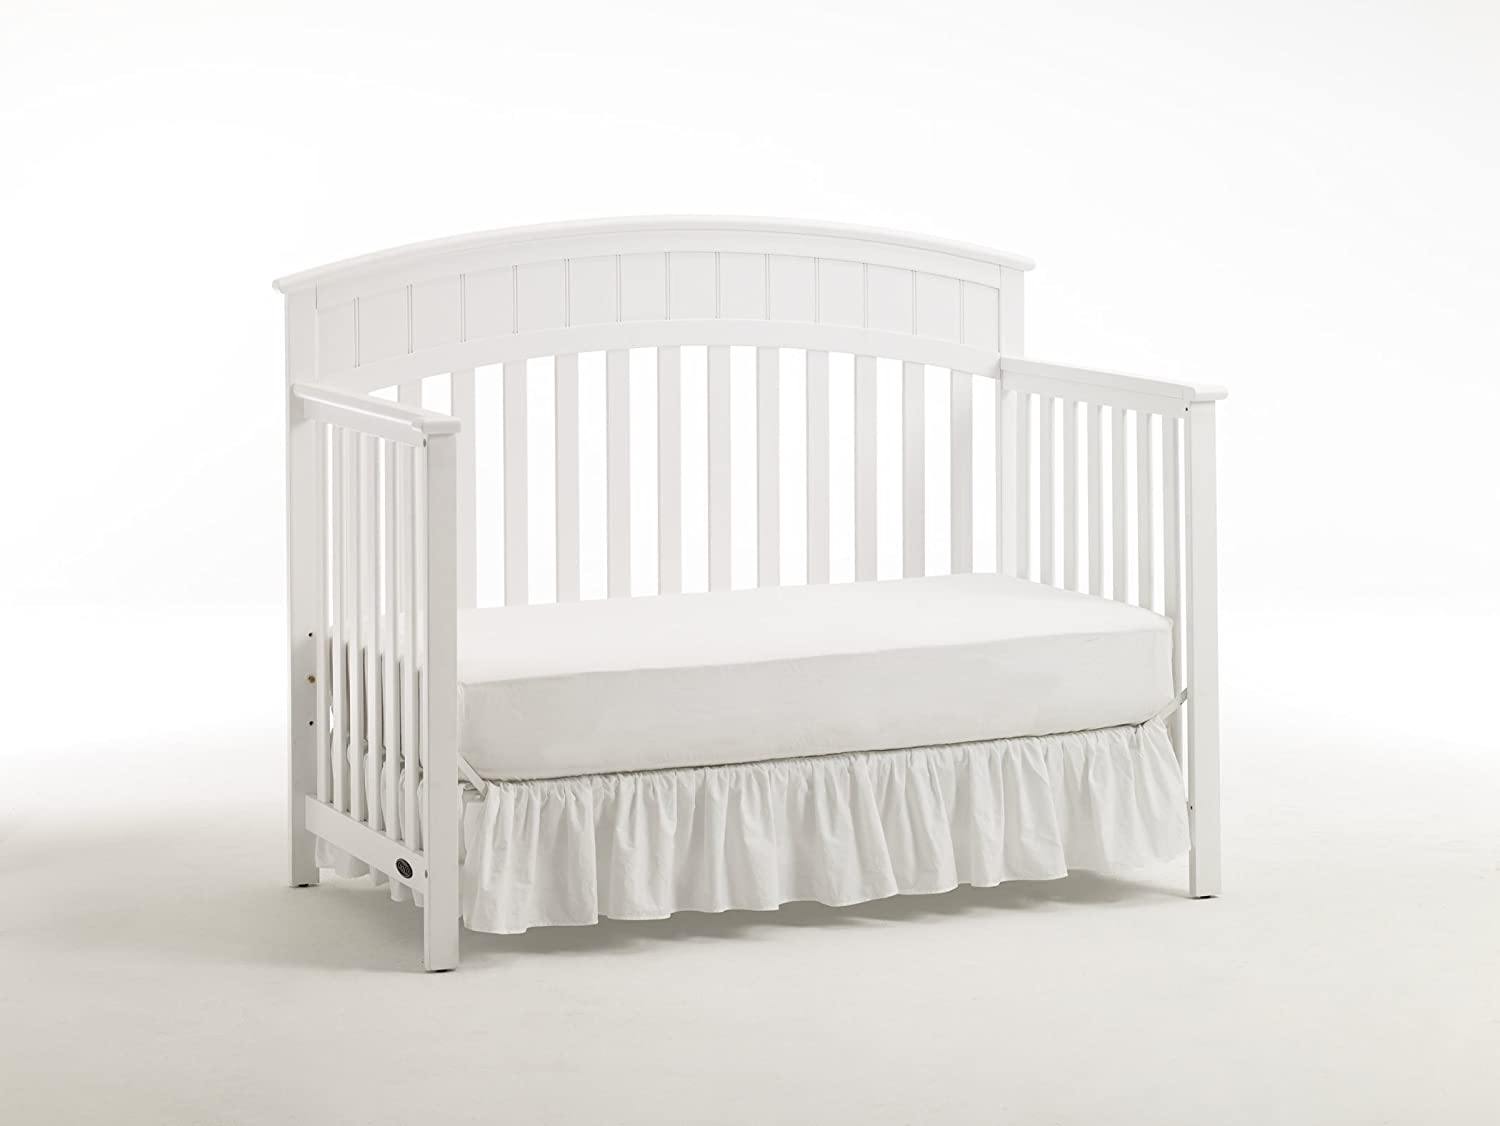 Crib for sale charleston sc - Amazon Com Graco Charleston Dressing Table White Discontinued By Manufacturer Nursery Dressers Baby